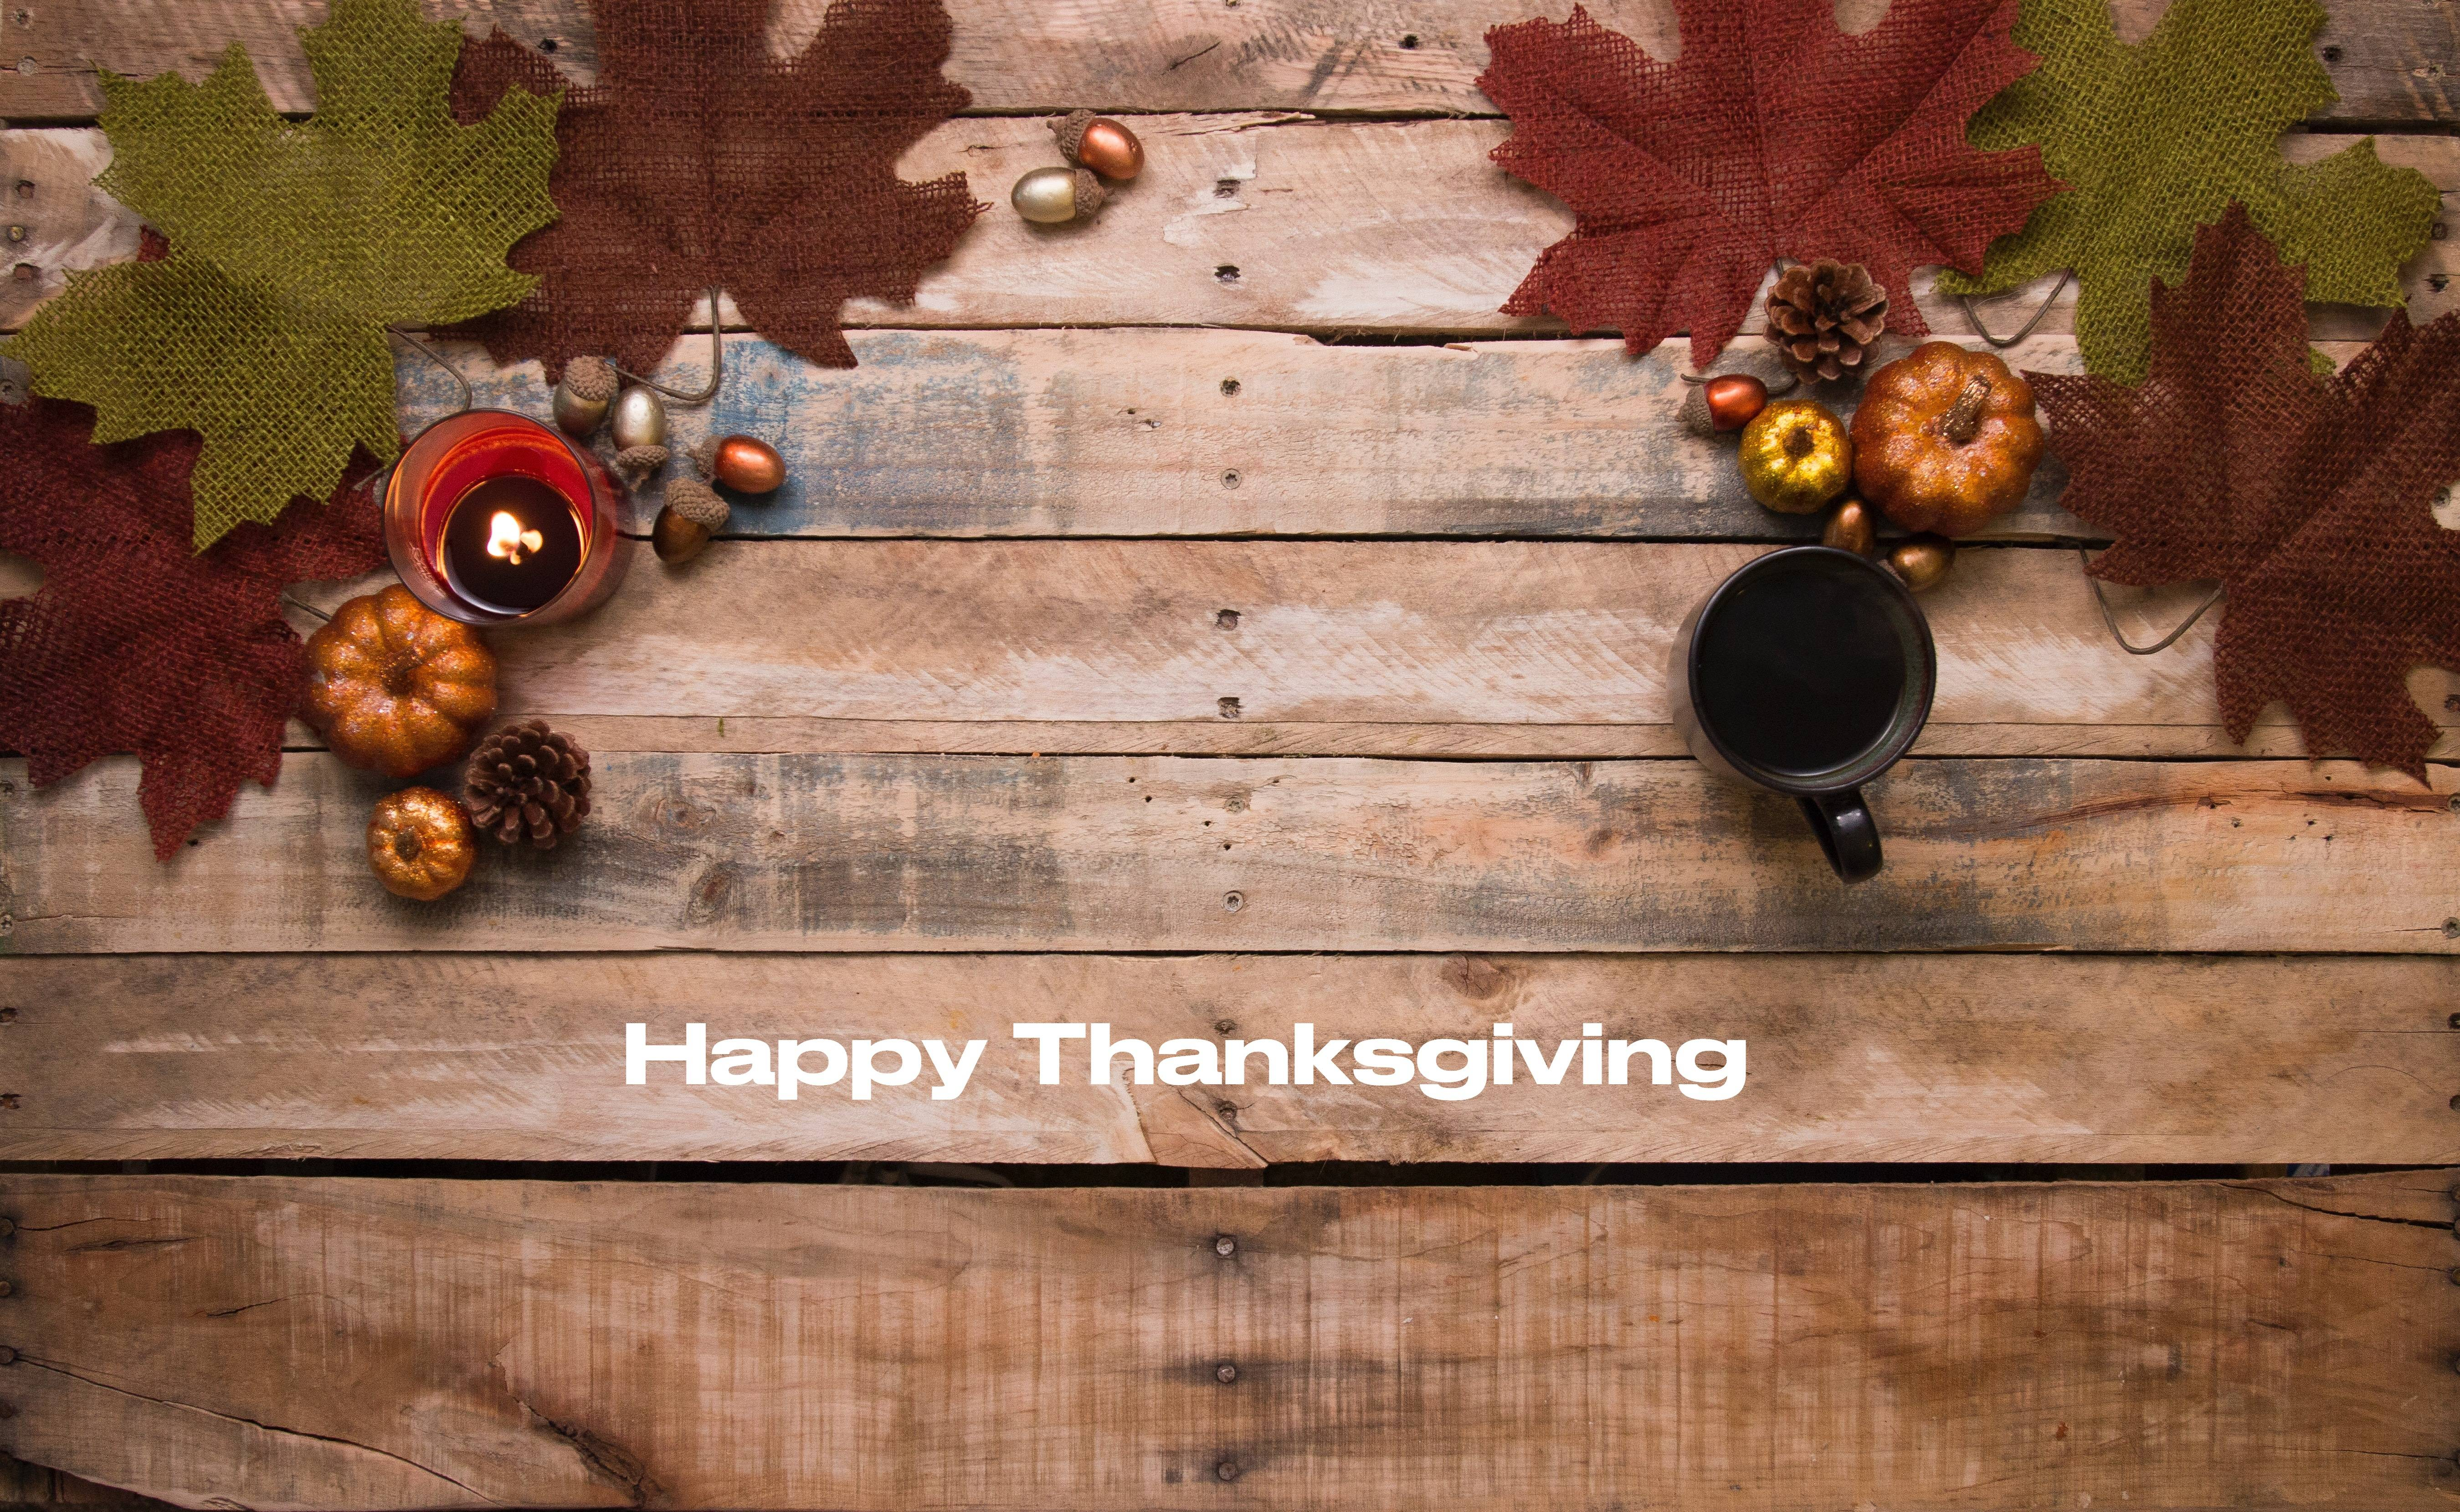 East and West offices closed for the Thanksgiving holidays